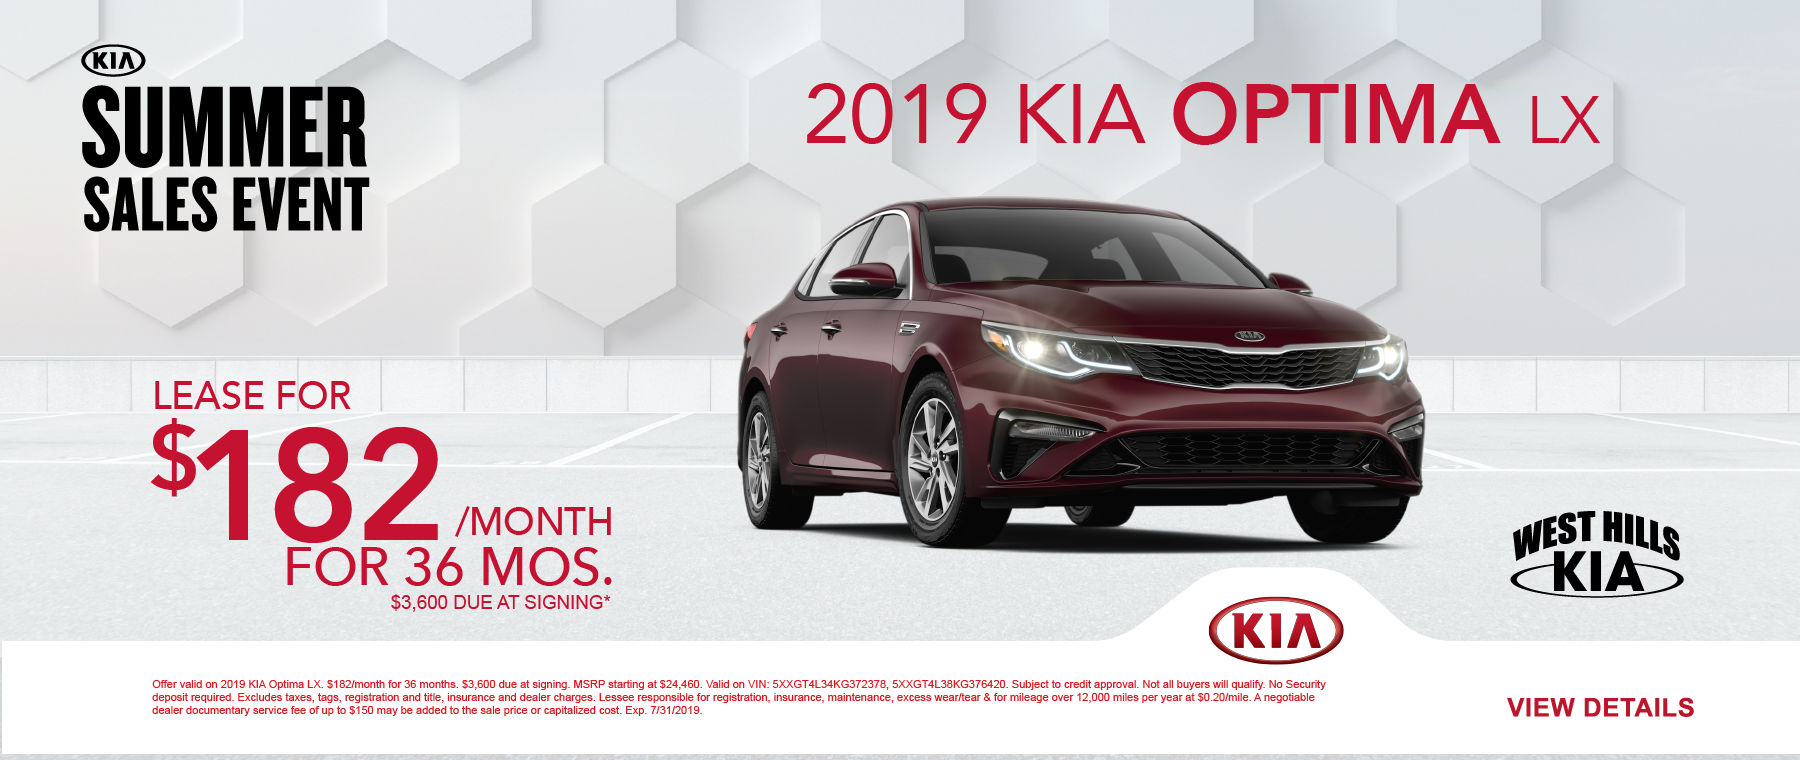 2019 KIA Optima LX (featured vehicle)  $182/month for 36 months  $3,600 Due at Signing   Offer valid on 2019 KIA Optima LX. $182/month for 36 months. $3,600 due at signing. MSRP starting at $24,460. Valid on VIN: 5XXGT4L34KG372378, 5XXGT4L38KG376420. Subject to credit approval. Not all buyers will qualify. No Security deposit required. Excludes taxes, tags, registration and title, insurance and dealer charges. Lessee responsible for registration, insurance, maintenance, excess wear/tear & for mileage over 12,000 miles per year at $0.20/mile. A negotiable dealer documentary service fee of up to $150 may be added to the sale price or capitalized cost. Exp. 7/31/2019.